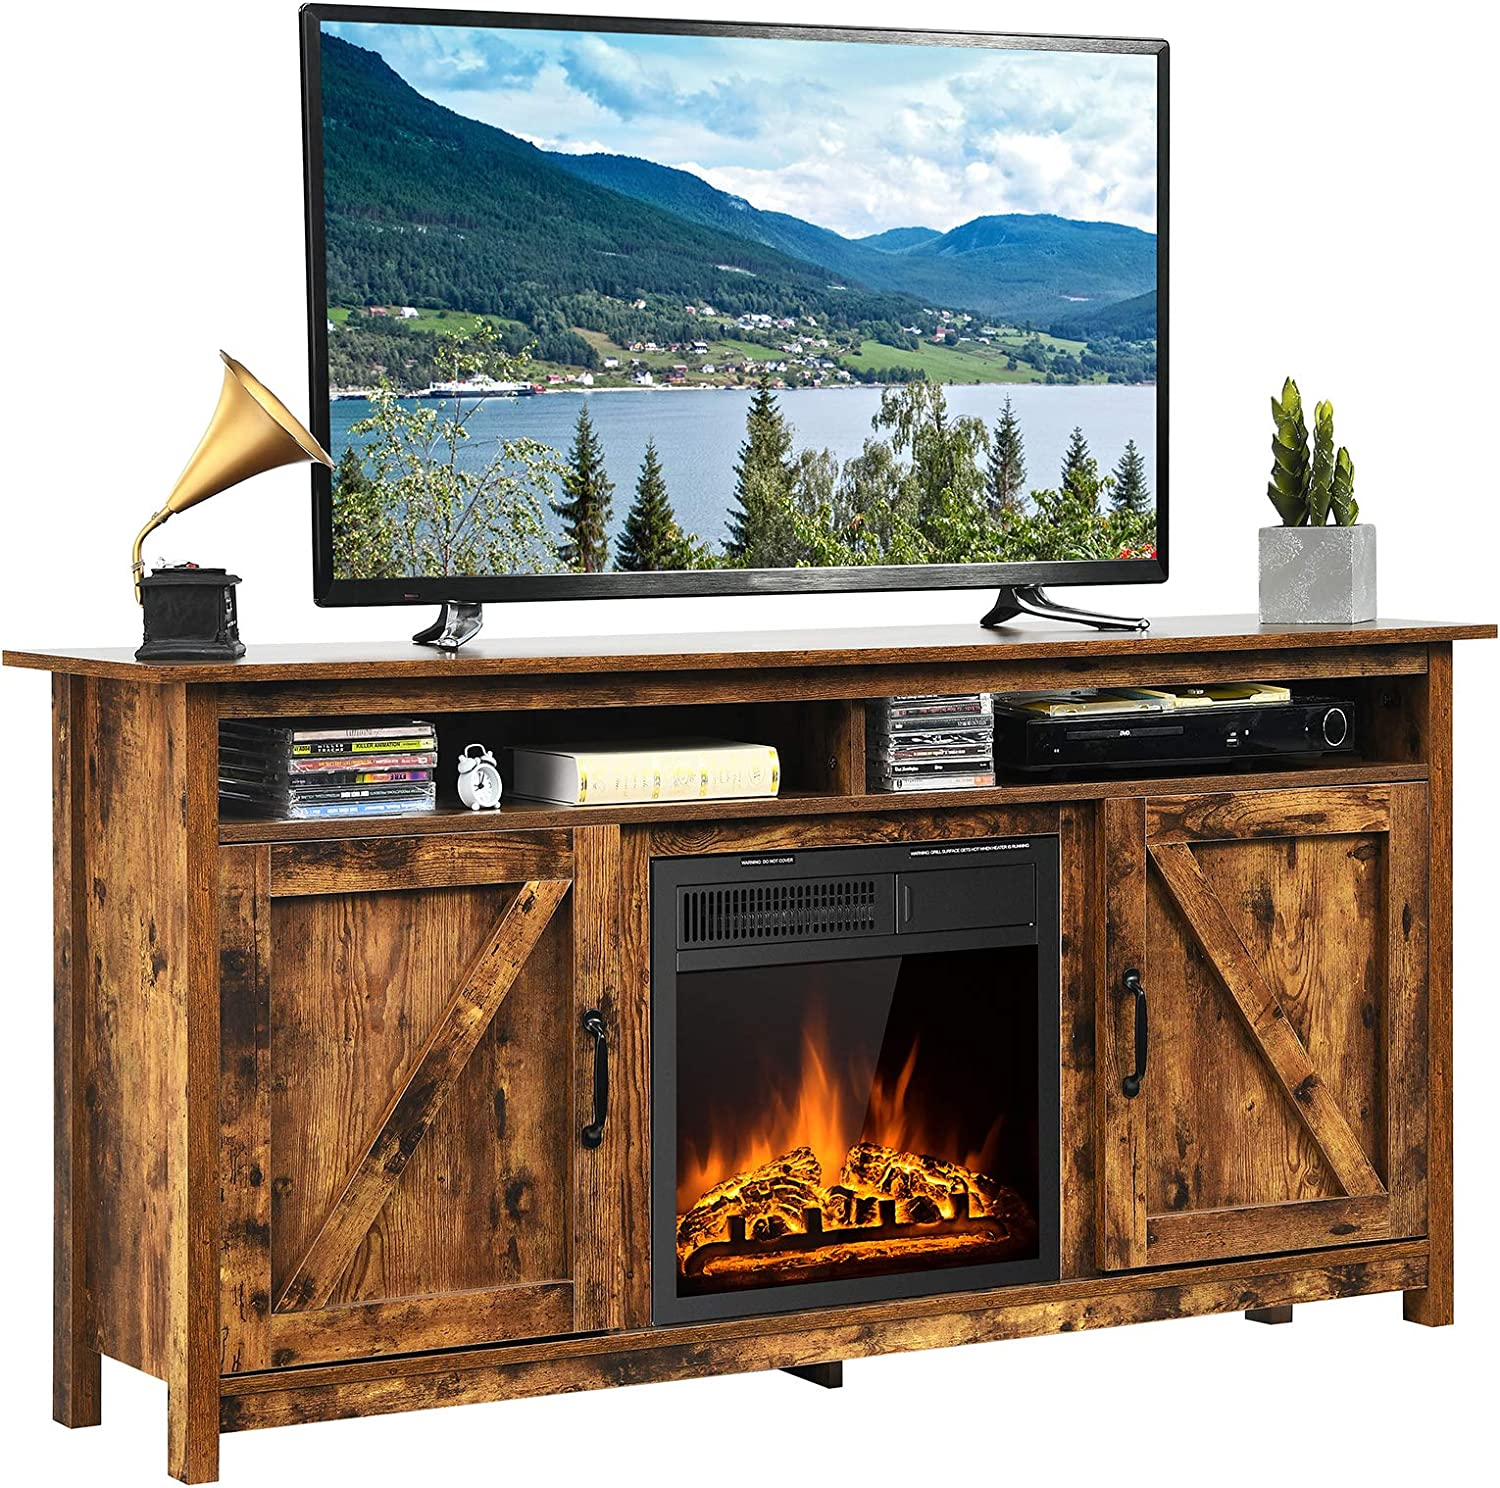 Tangkula Industrial Fireplace TV Stand for TVs Up to 20 Inches,  Entertainment Center w/ 20W Fireplace, Fireplace Media Console Table,  Electric ...